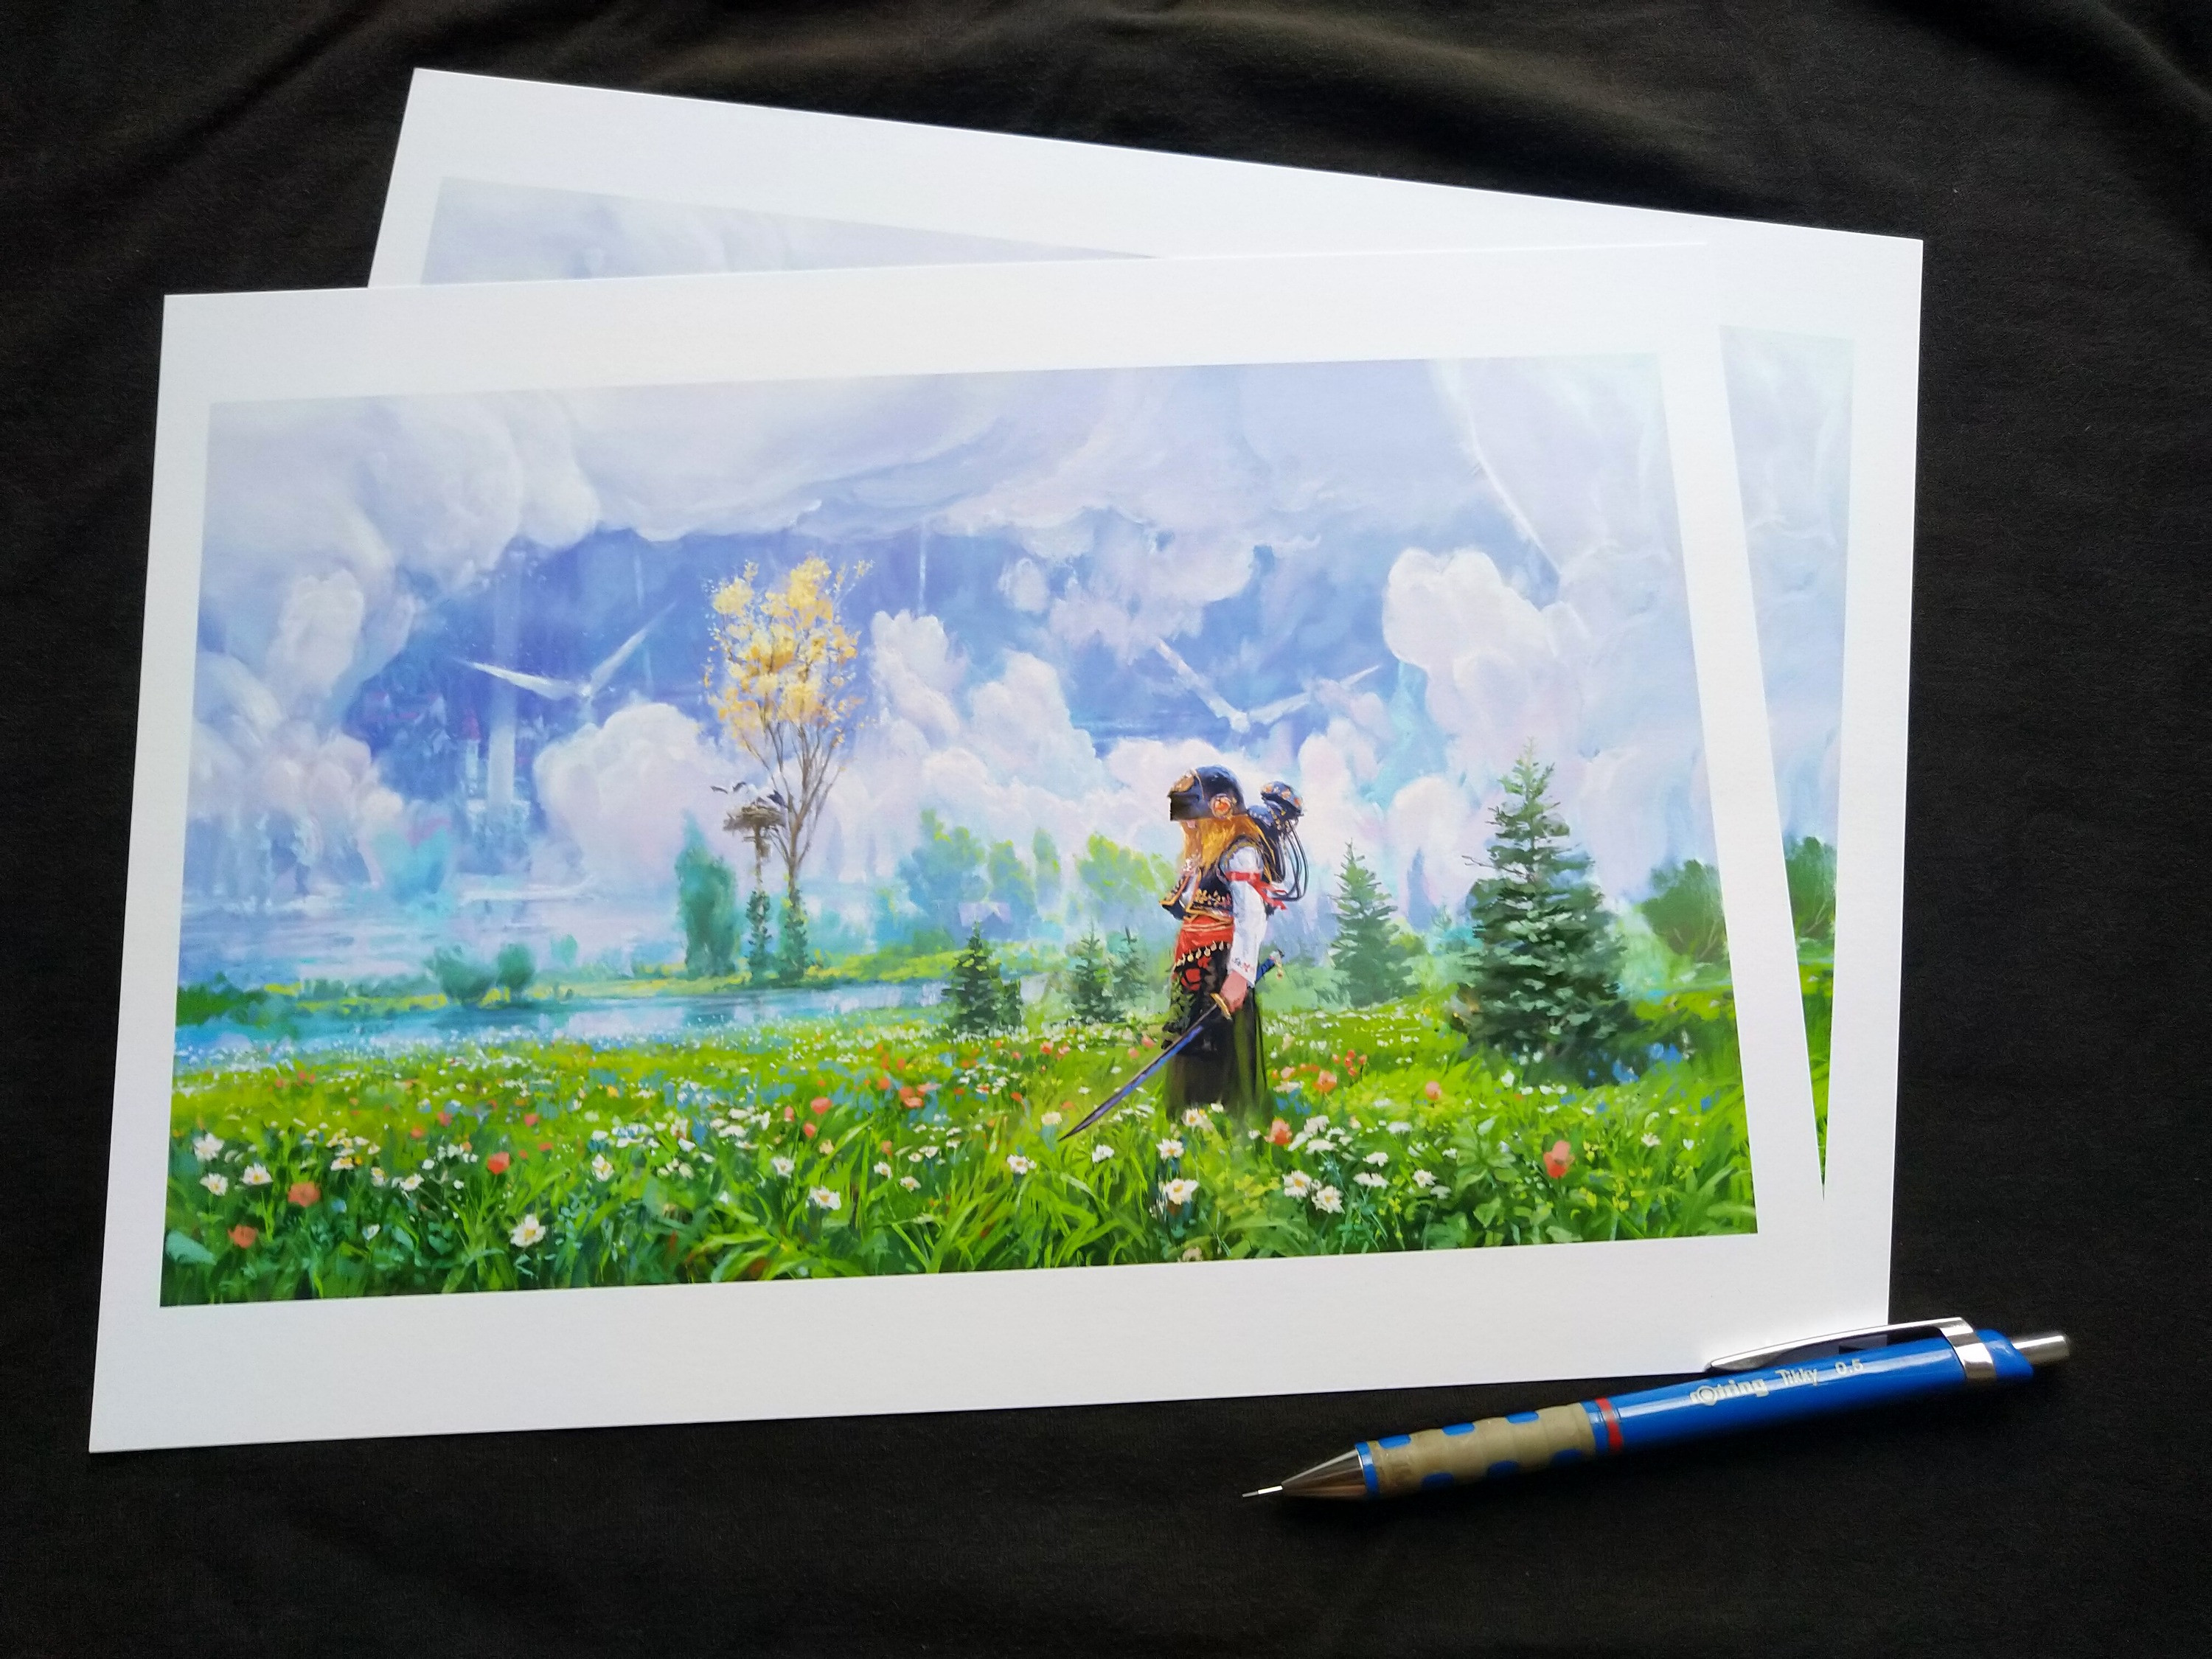 A4 fine art prints, available from $15.